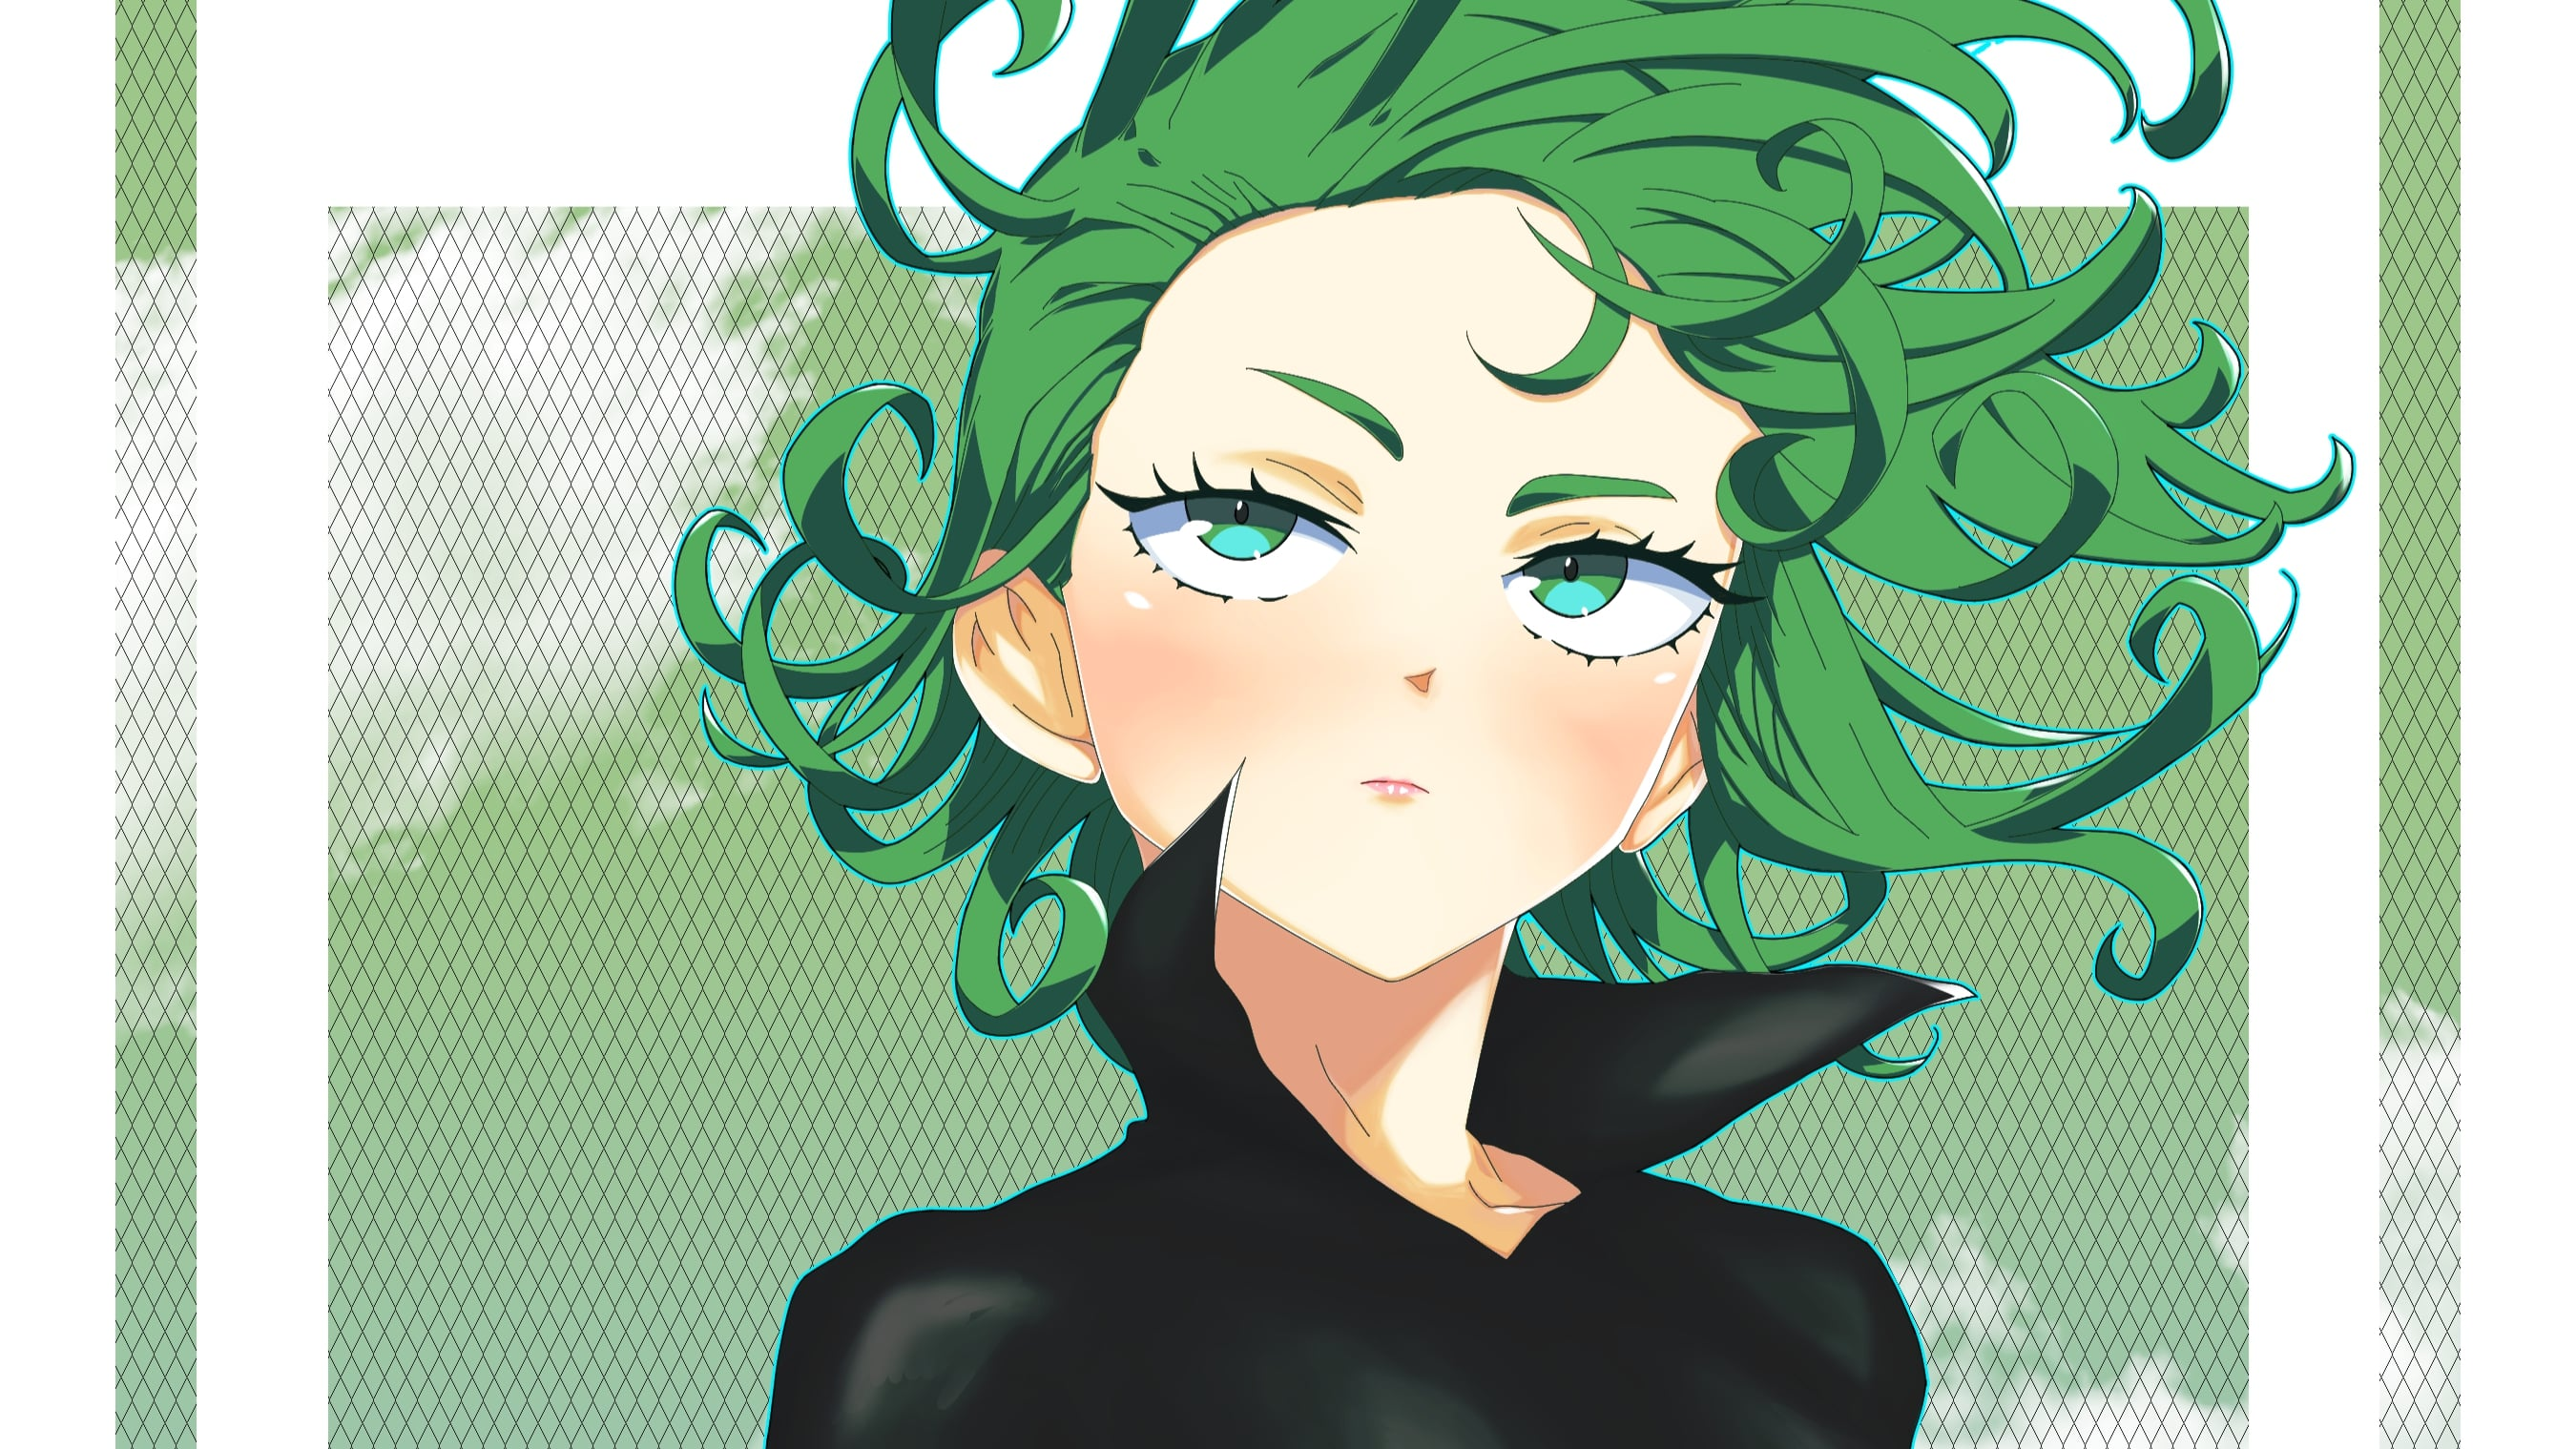 Wallpaper Of Anime One Punch Man Tatsumaki Background Hd Image